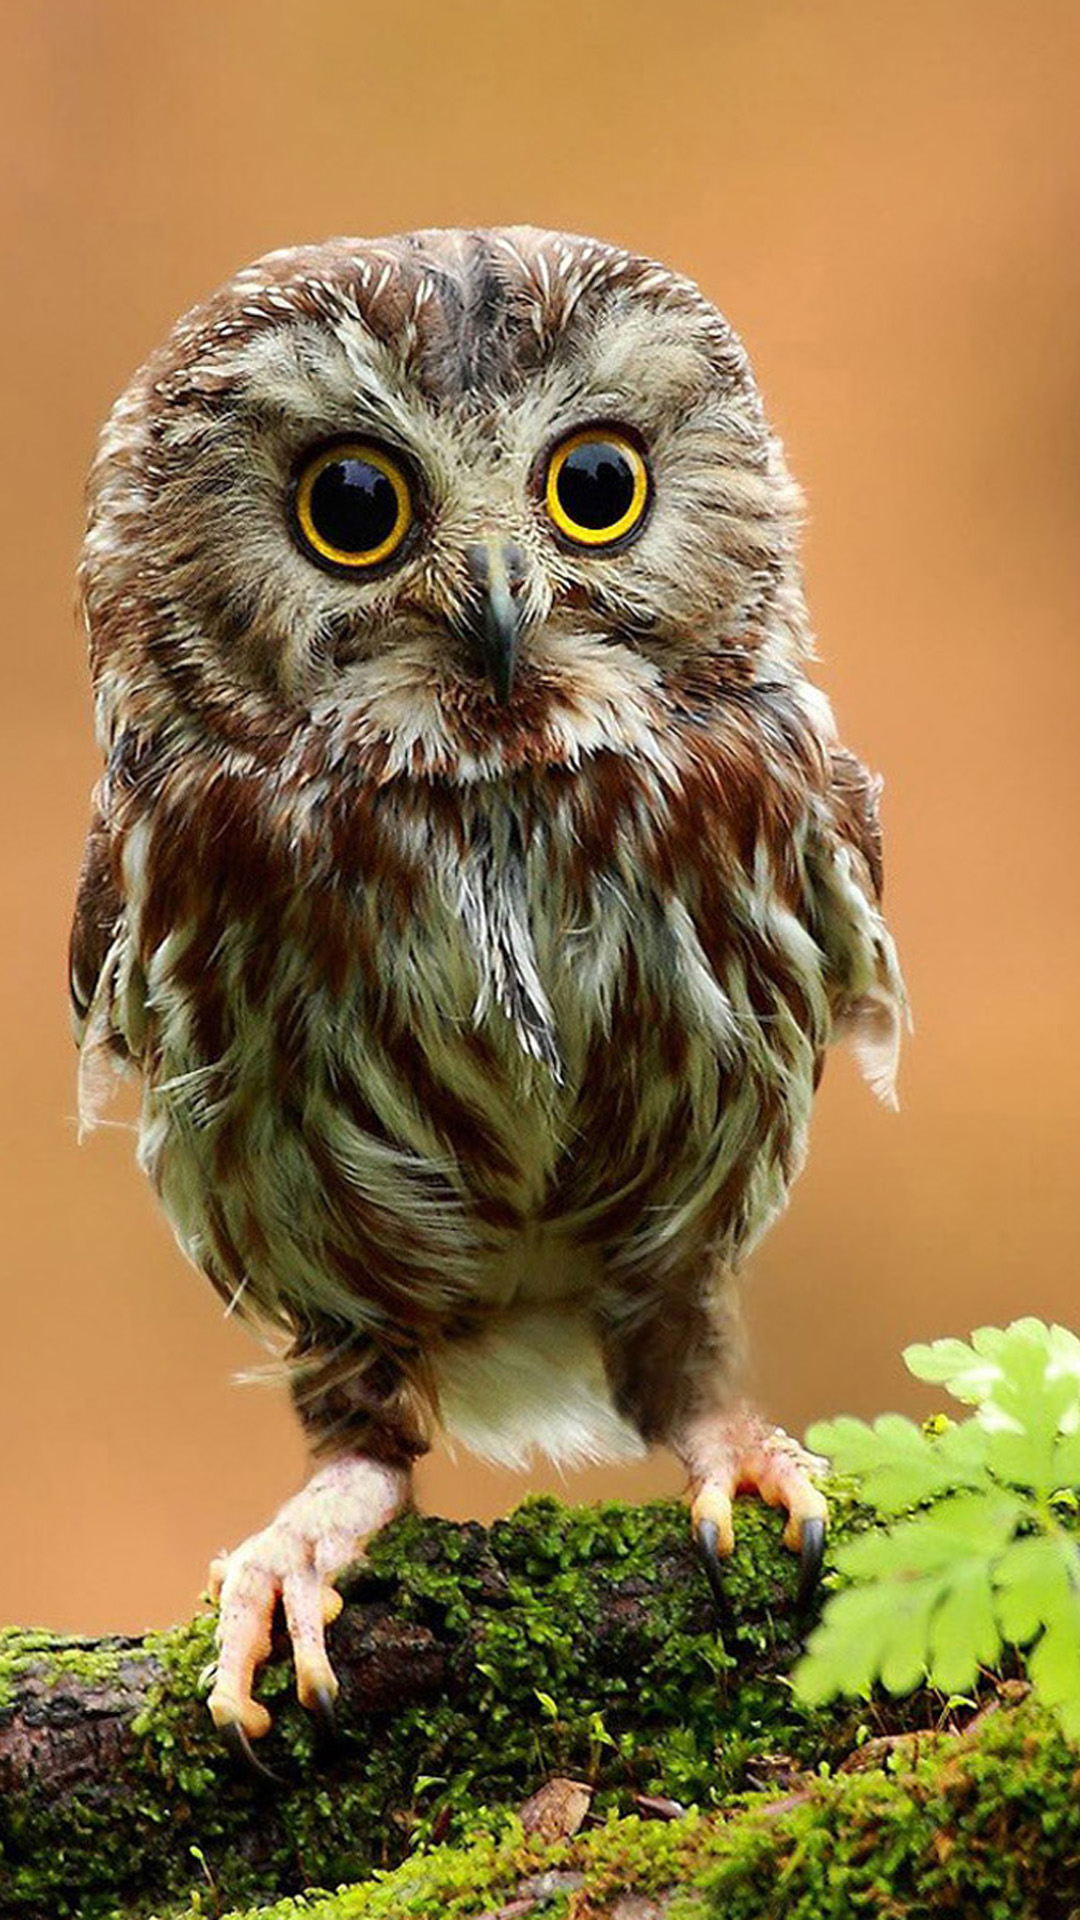 Little Owl In Gods Eyes Android wallpaper